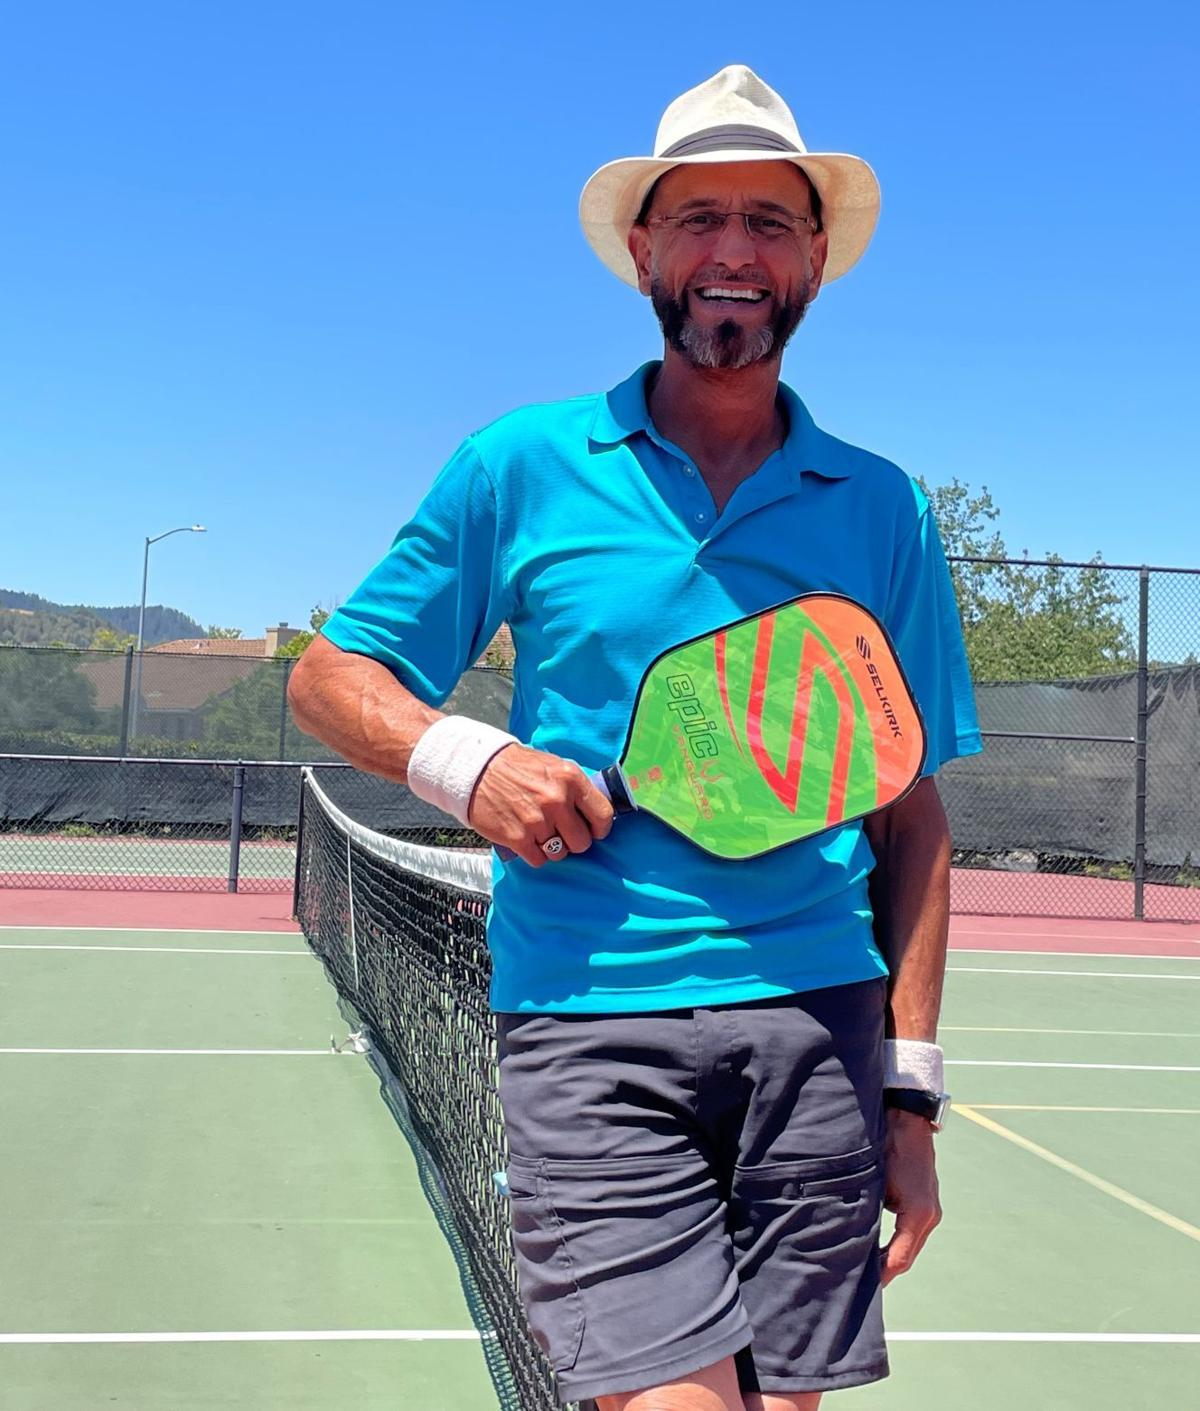 Charles Zook of the Napa Valley Pickleball Association